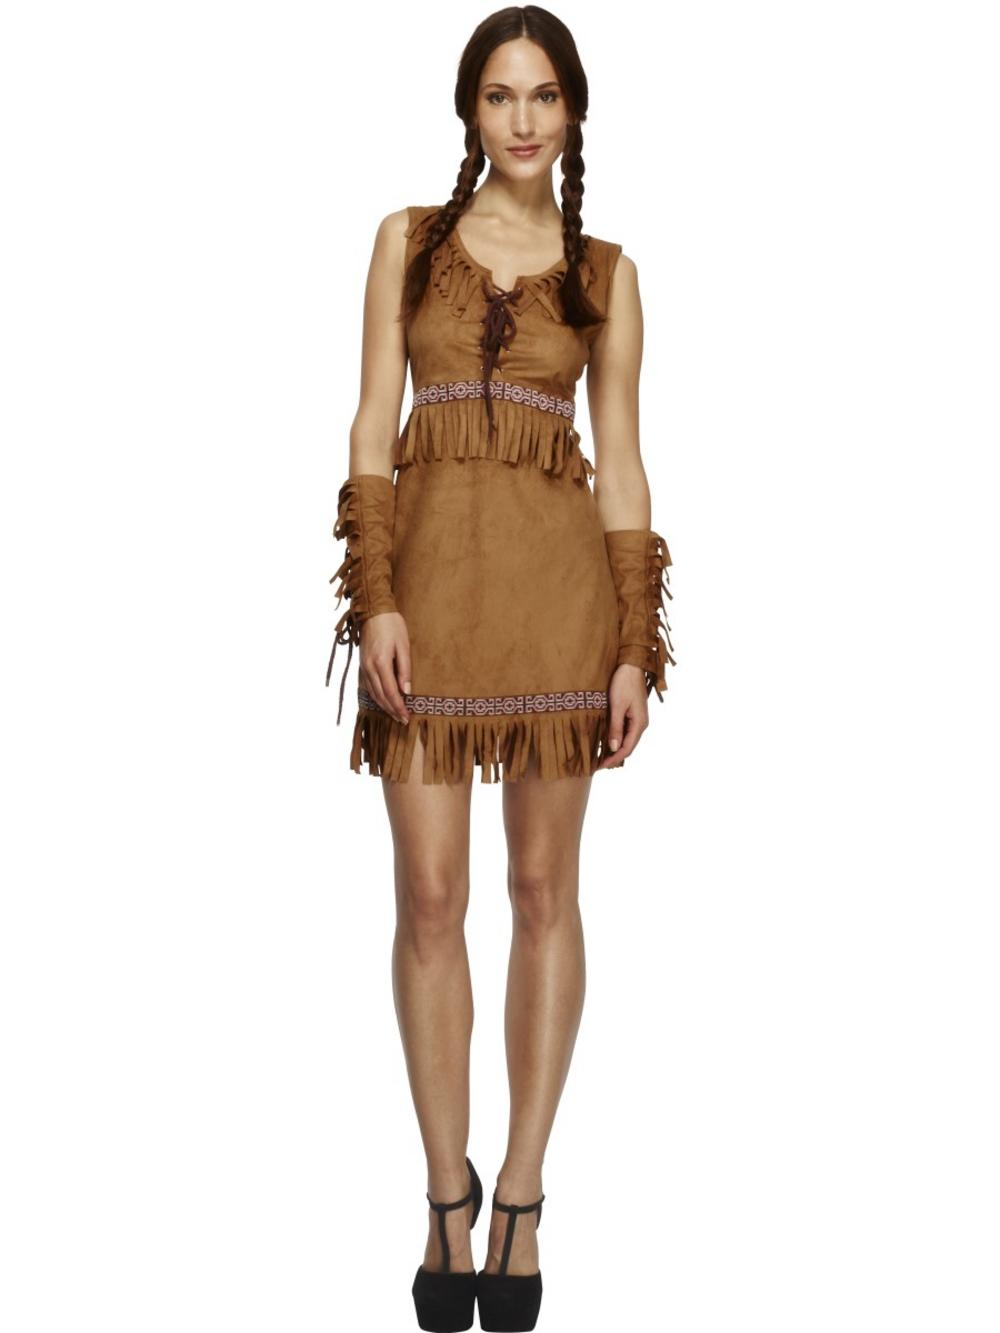 Fever Pocahontas Ladies Costume